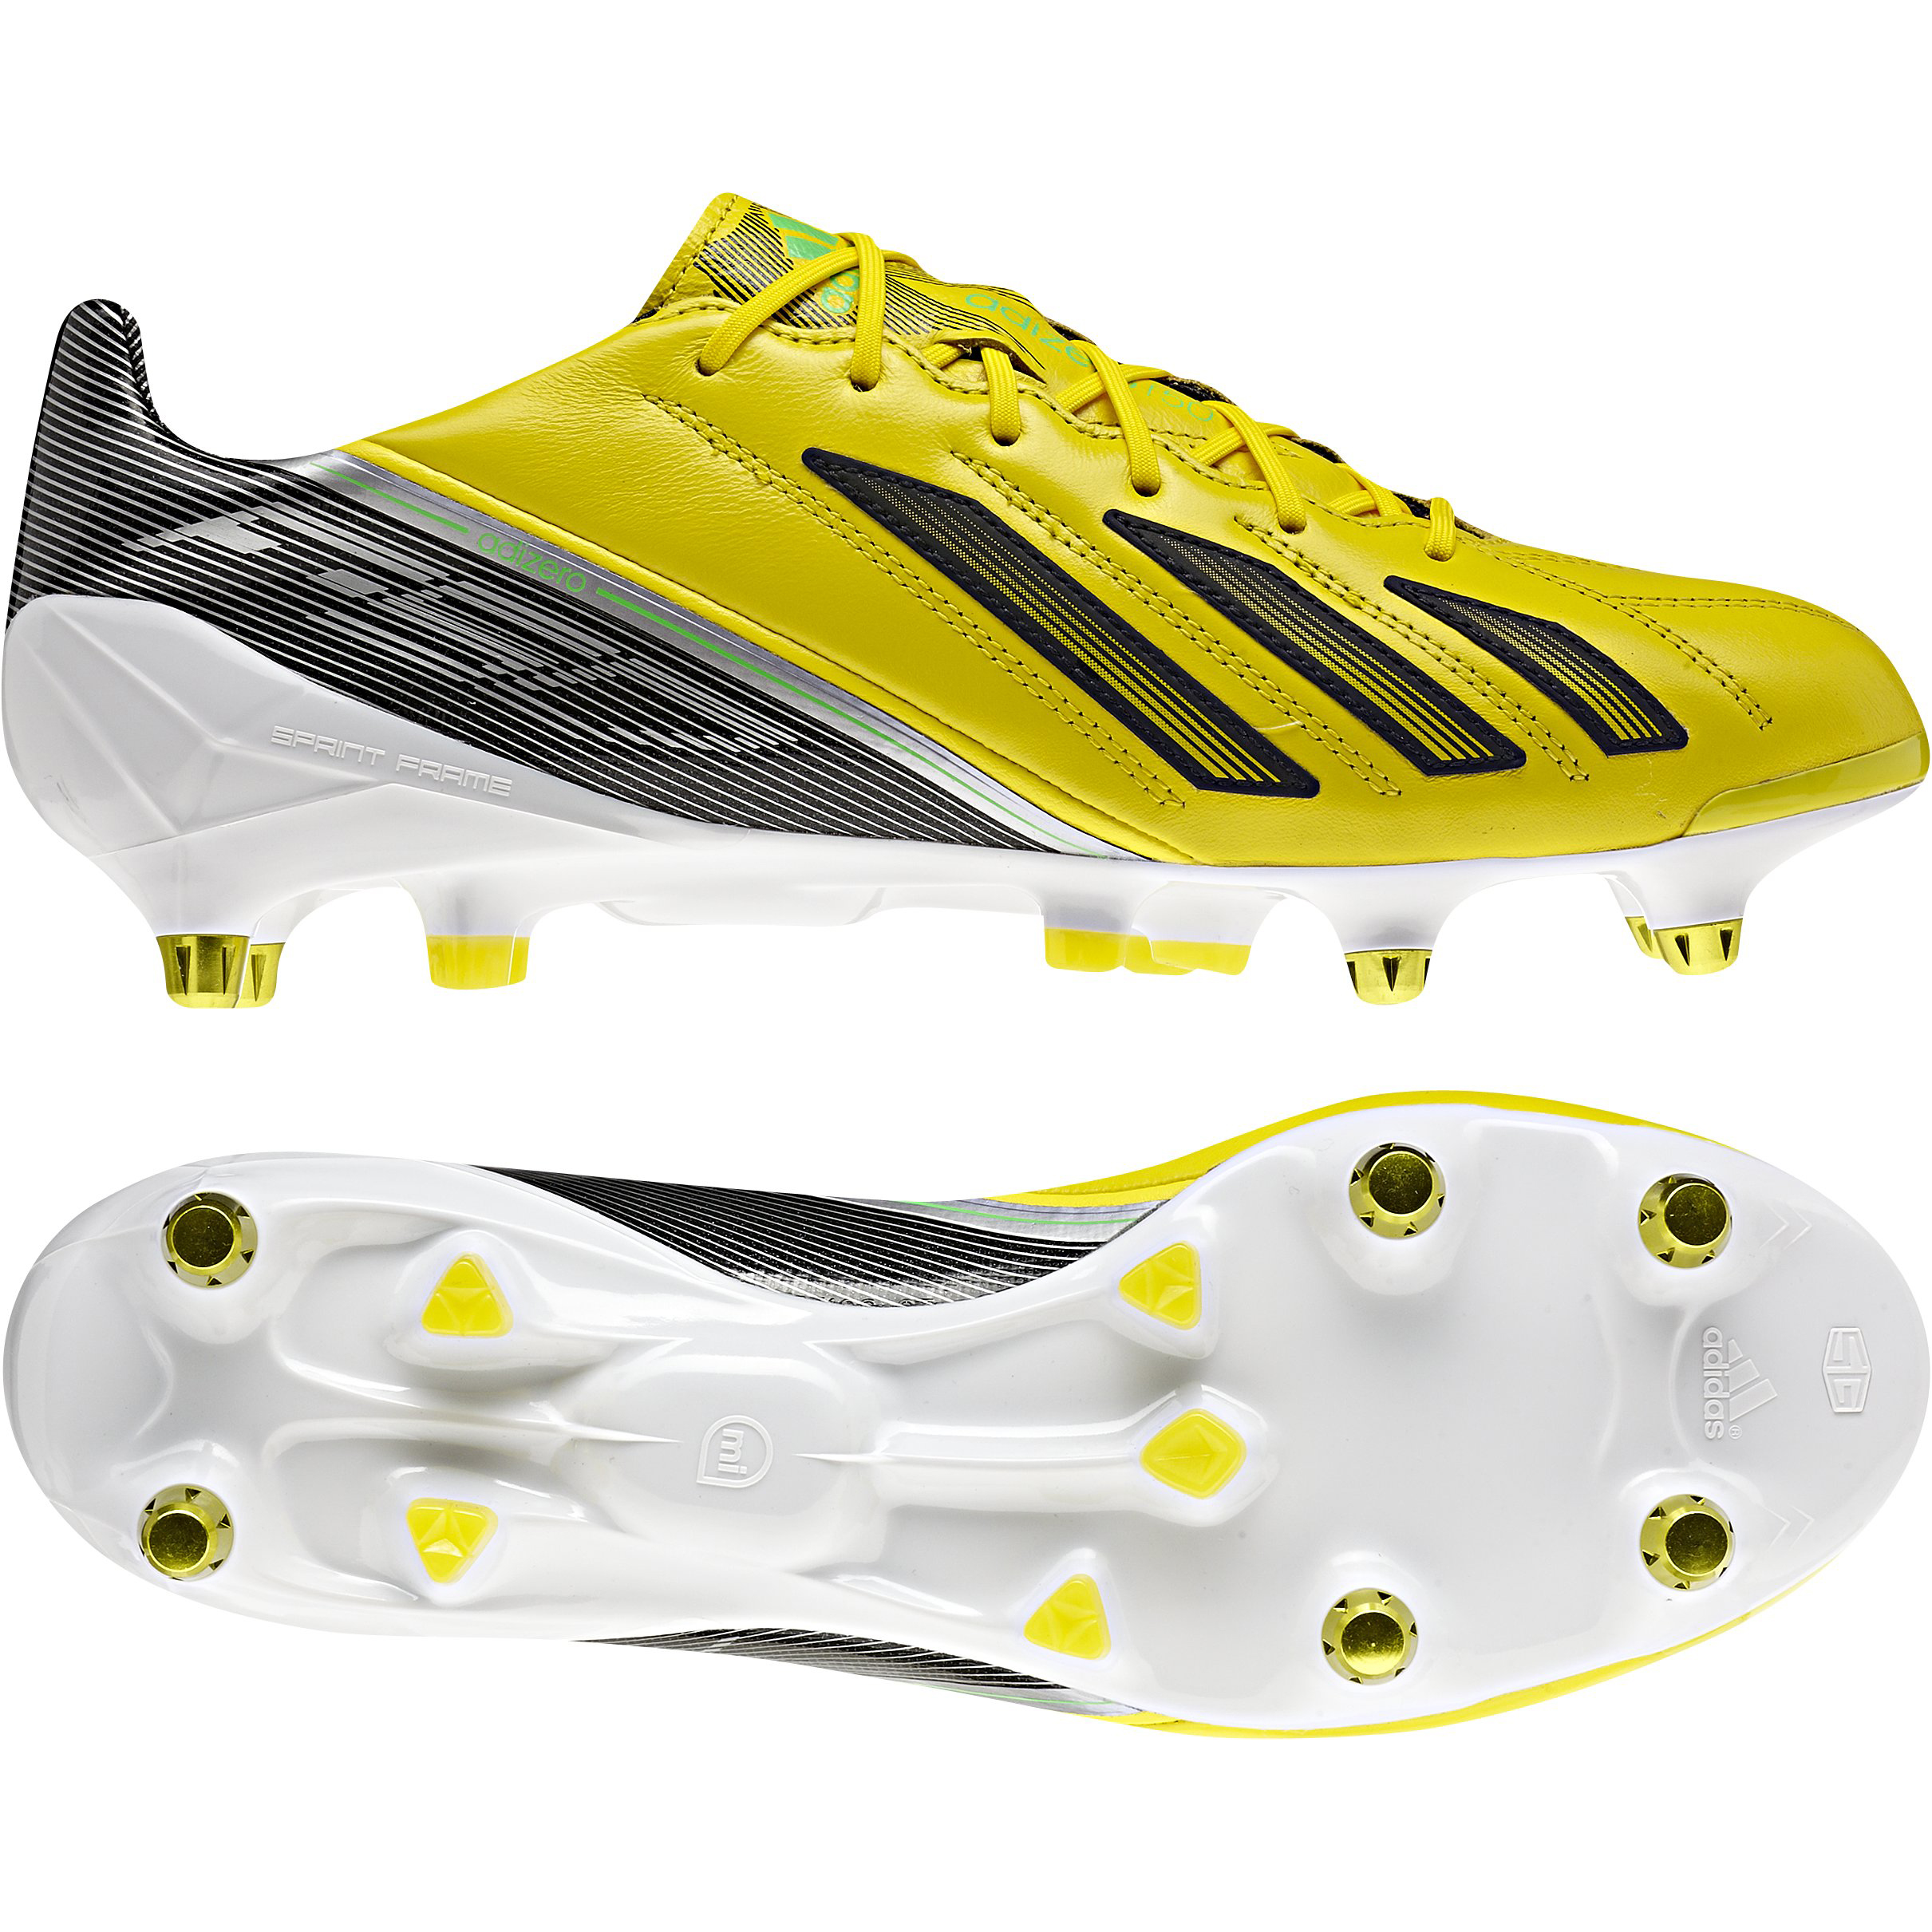 adidas AdiZero F50 XTRX Soft Ground Leather Football Boots - Vivid Yellow/Black/Green Zest